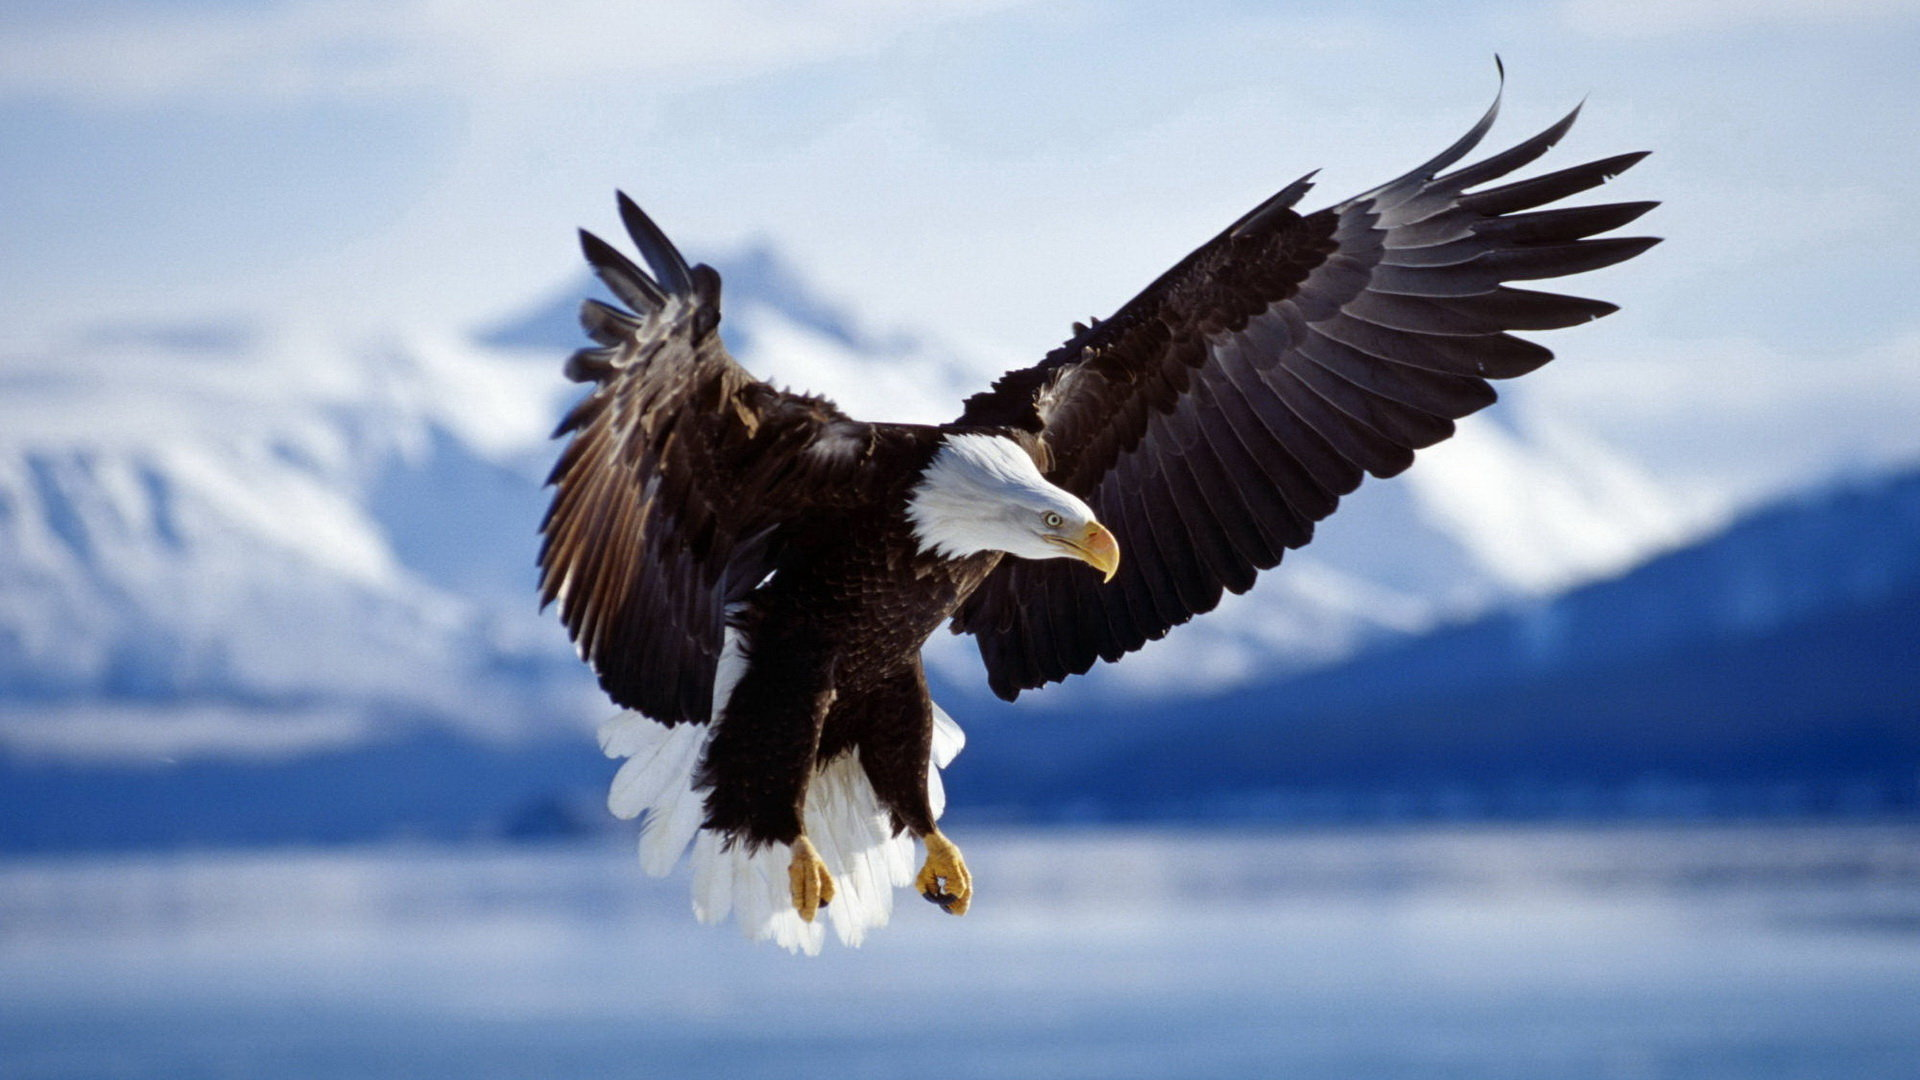 Download hd 1920x1080 Eagle desktop background ID:231131 for free